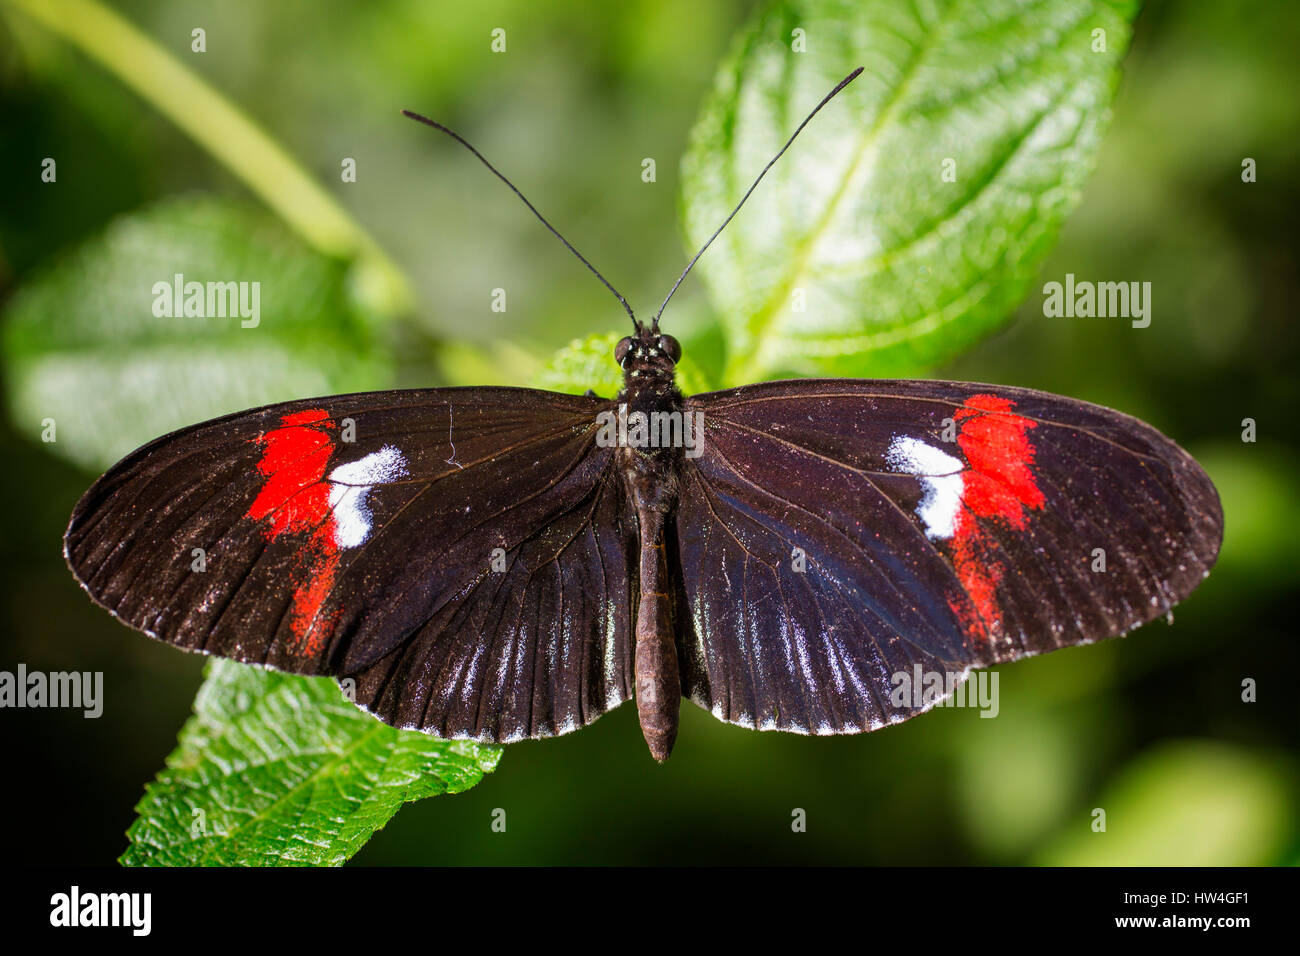 Benalmadena Butterfly Park, Costa del Sol, Malaga, Spain Europe - Stock Image